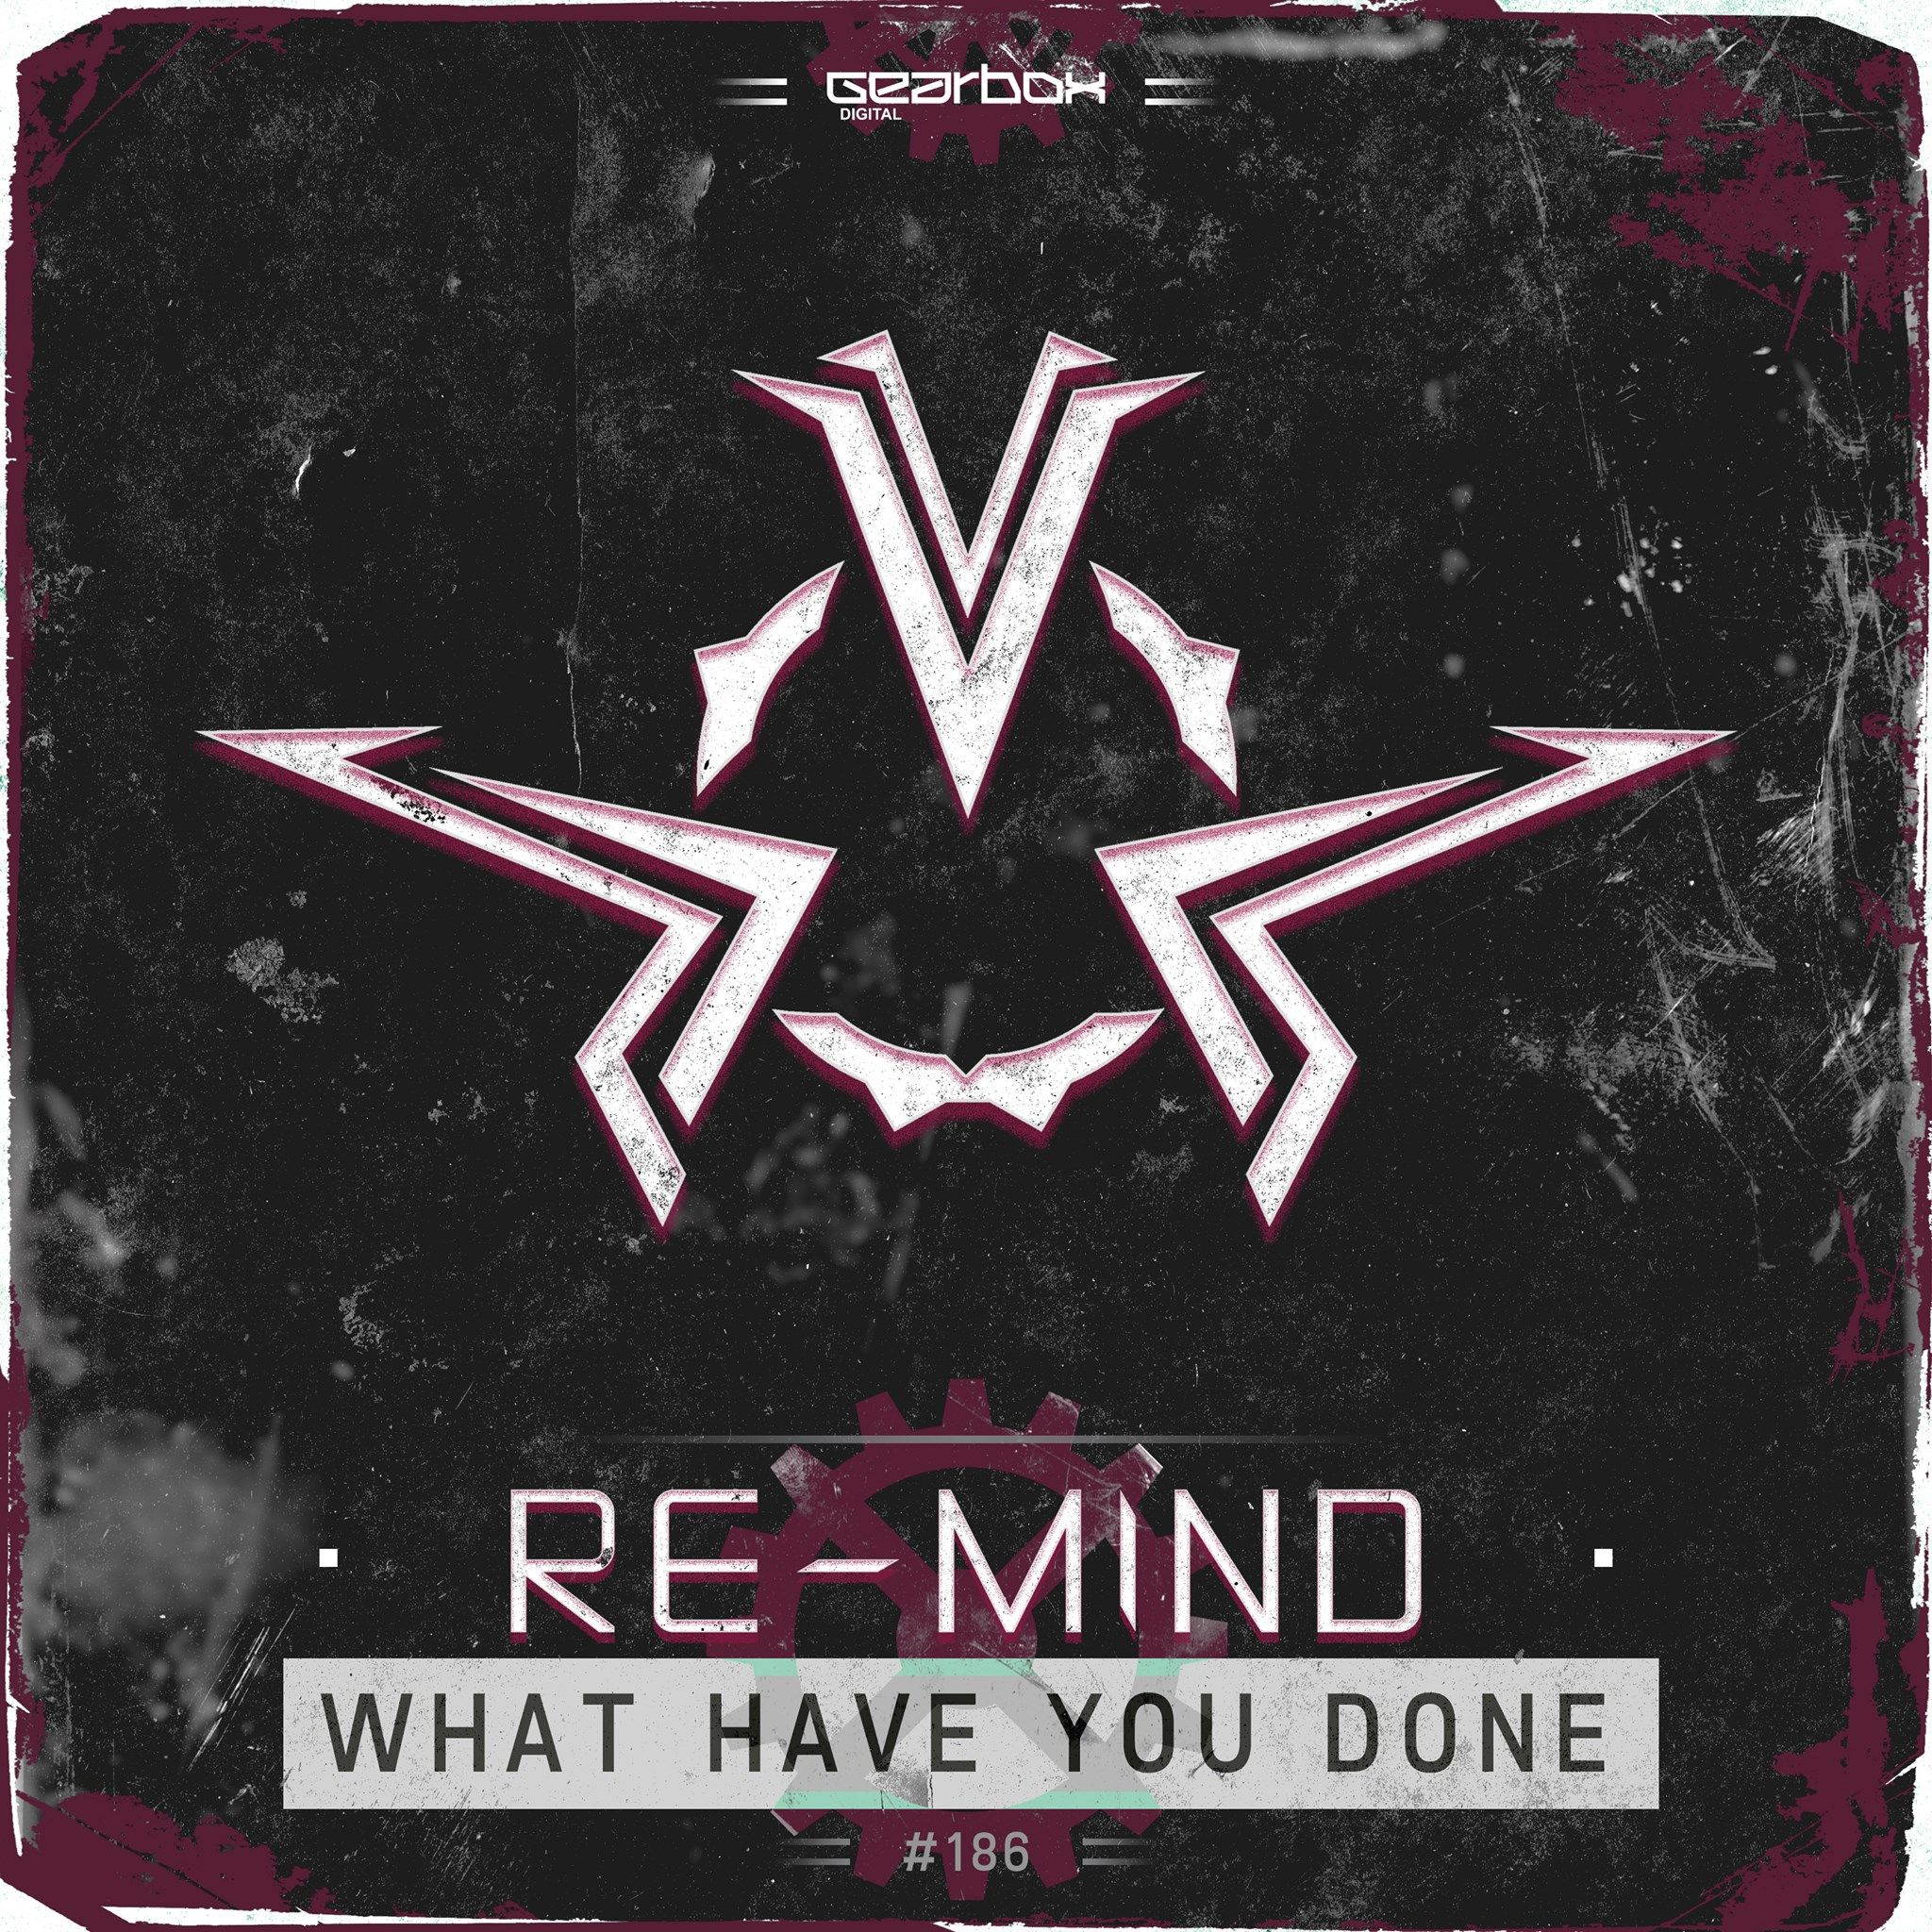 Re-Mind - What Have You Done [GEARBOX DIGITAL] GBD186